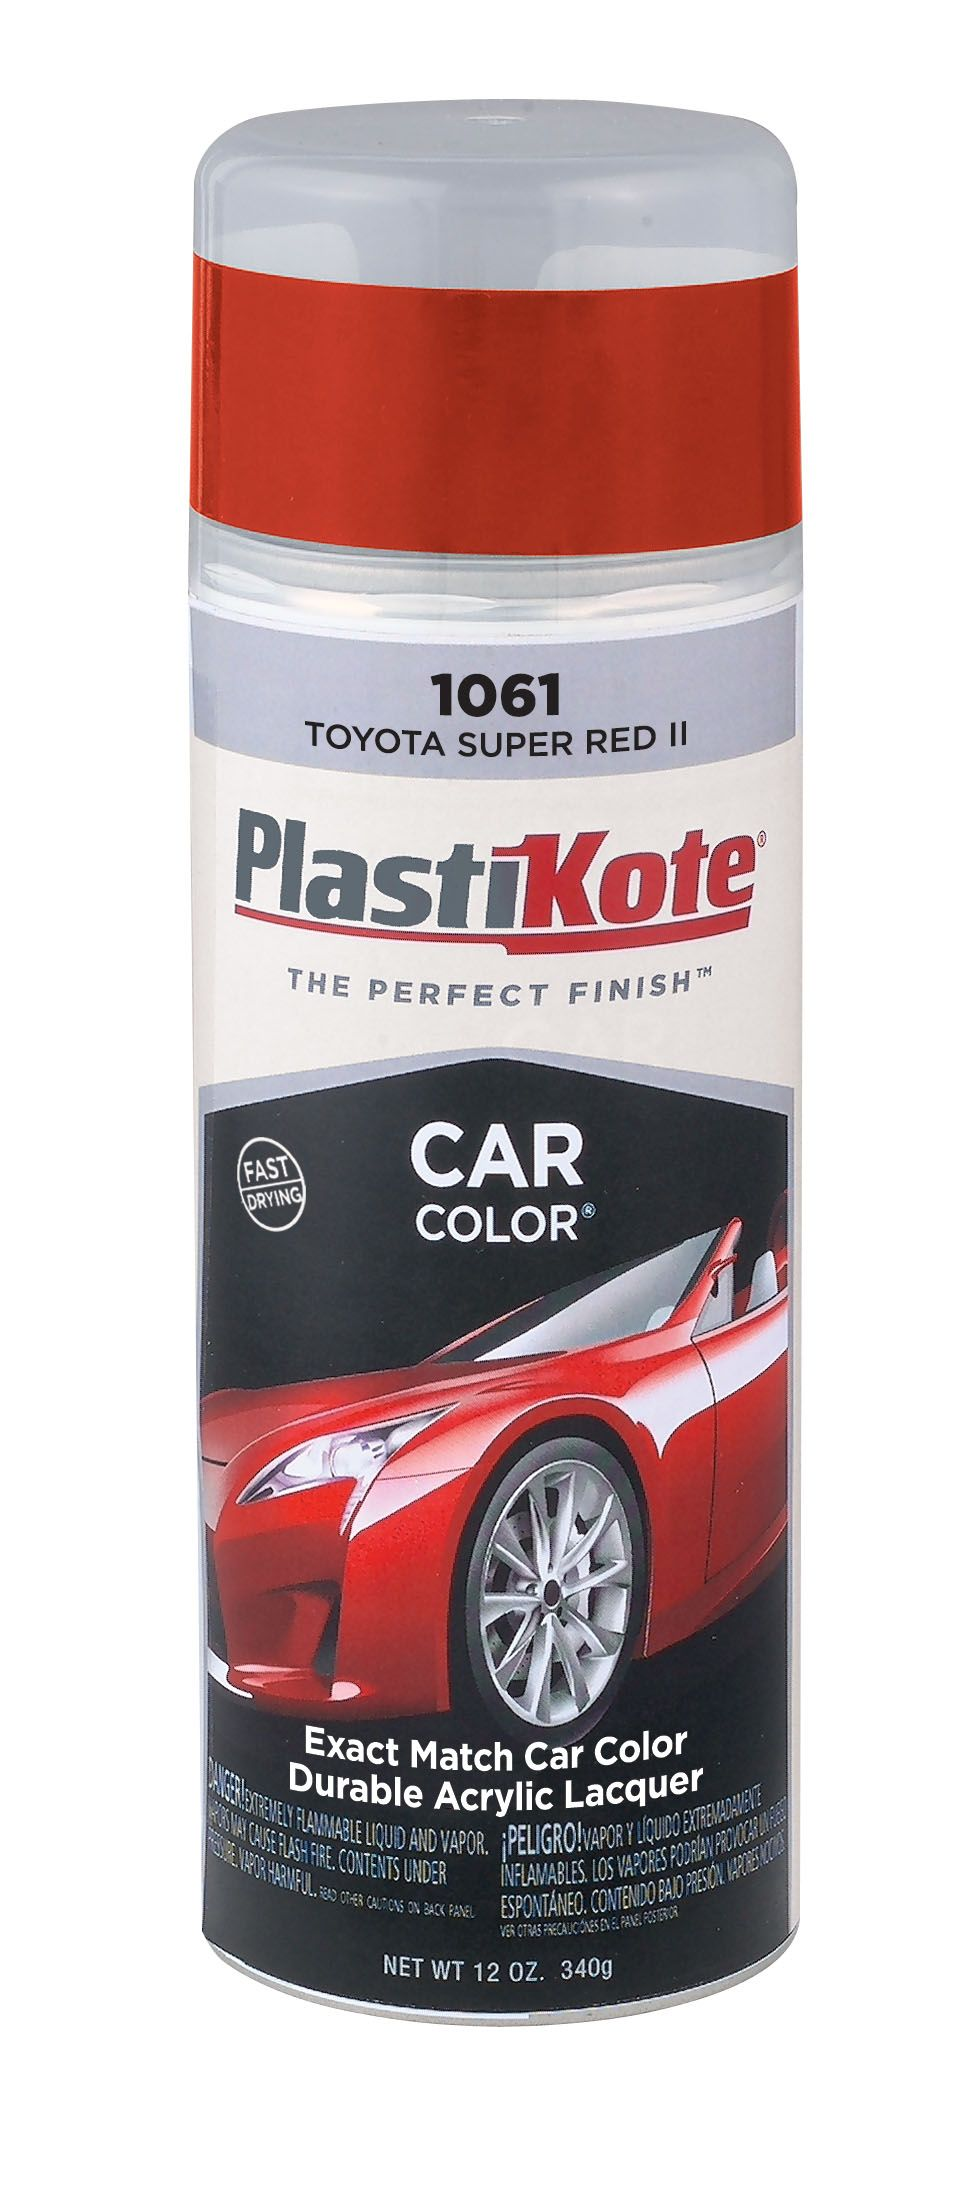 BTY1560 PlastiKote Paint For Automotive Touch Up